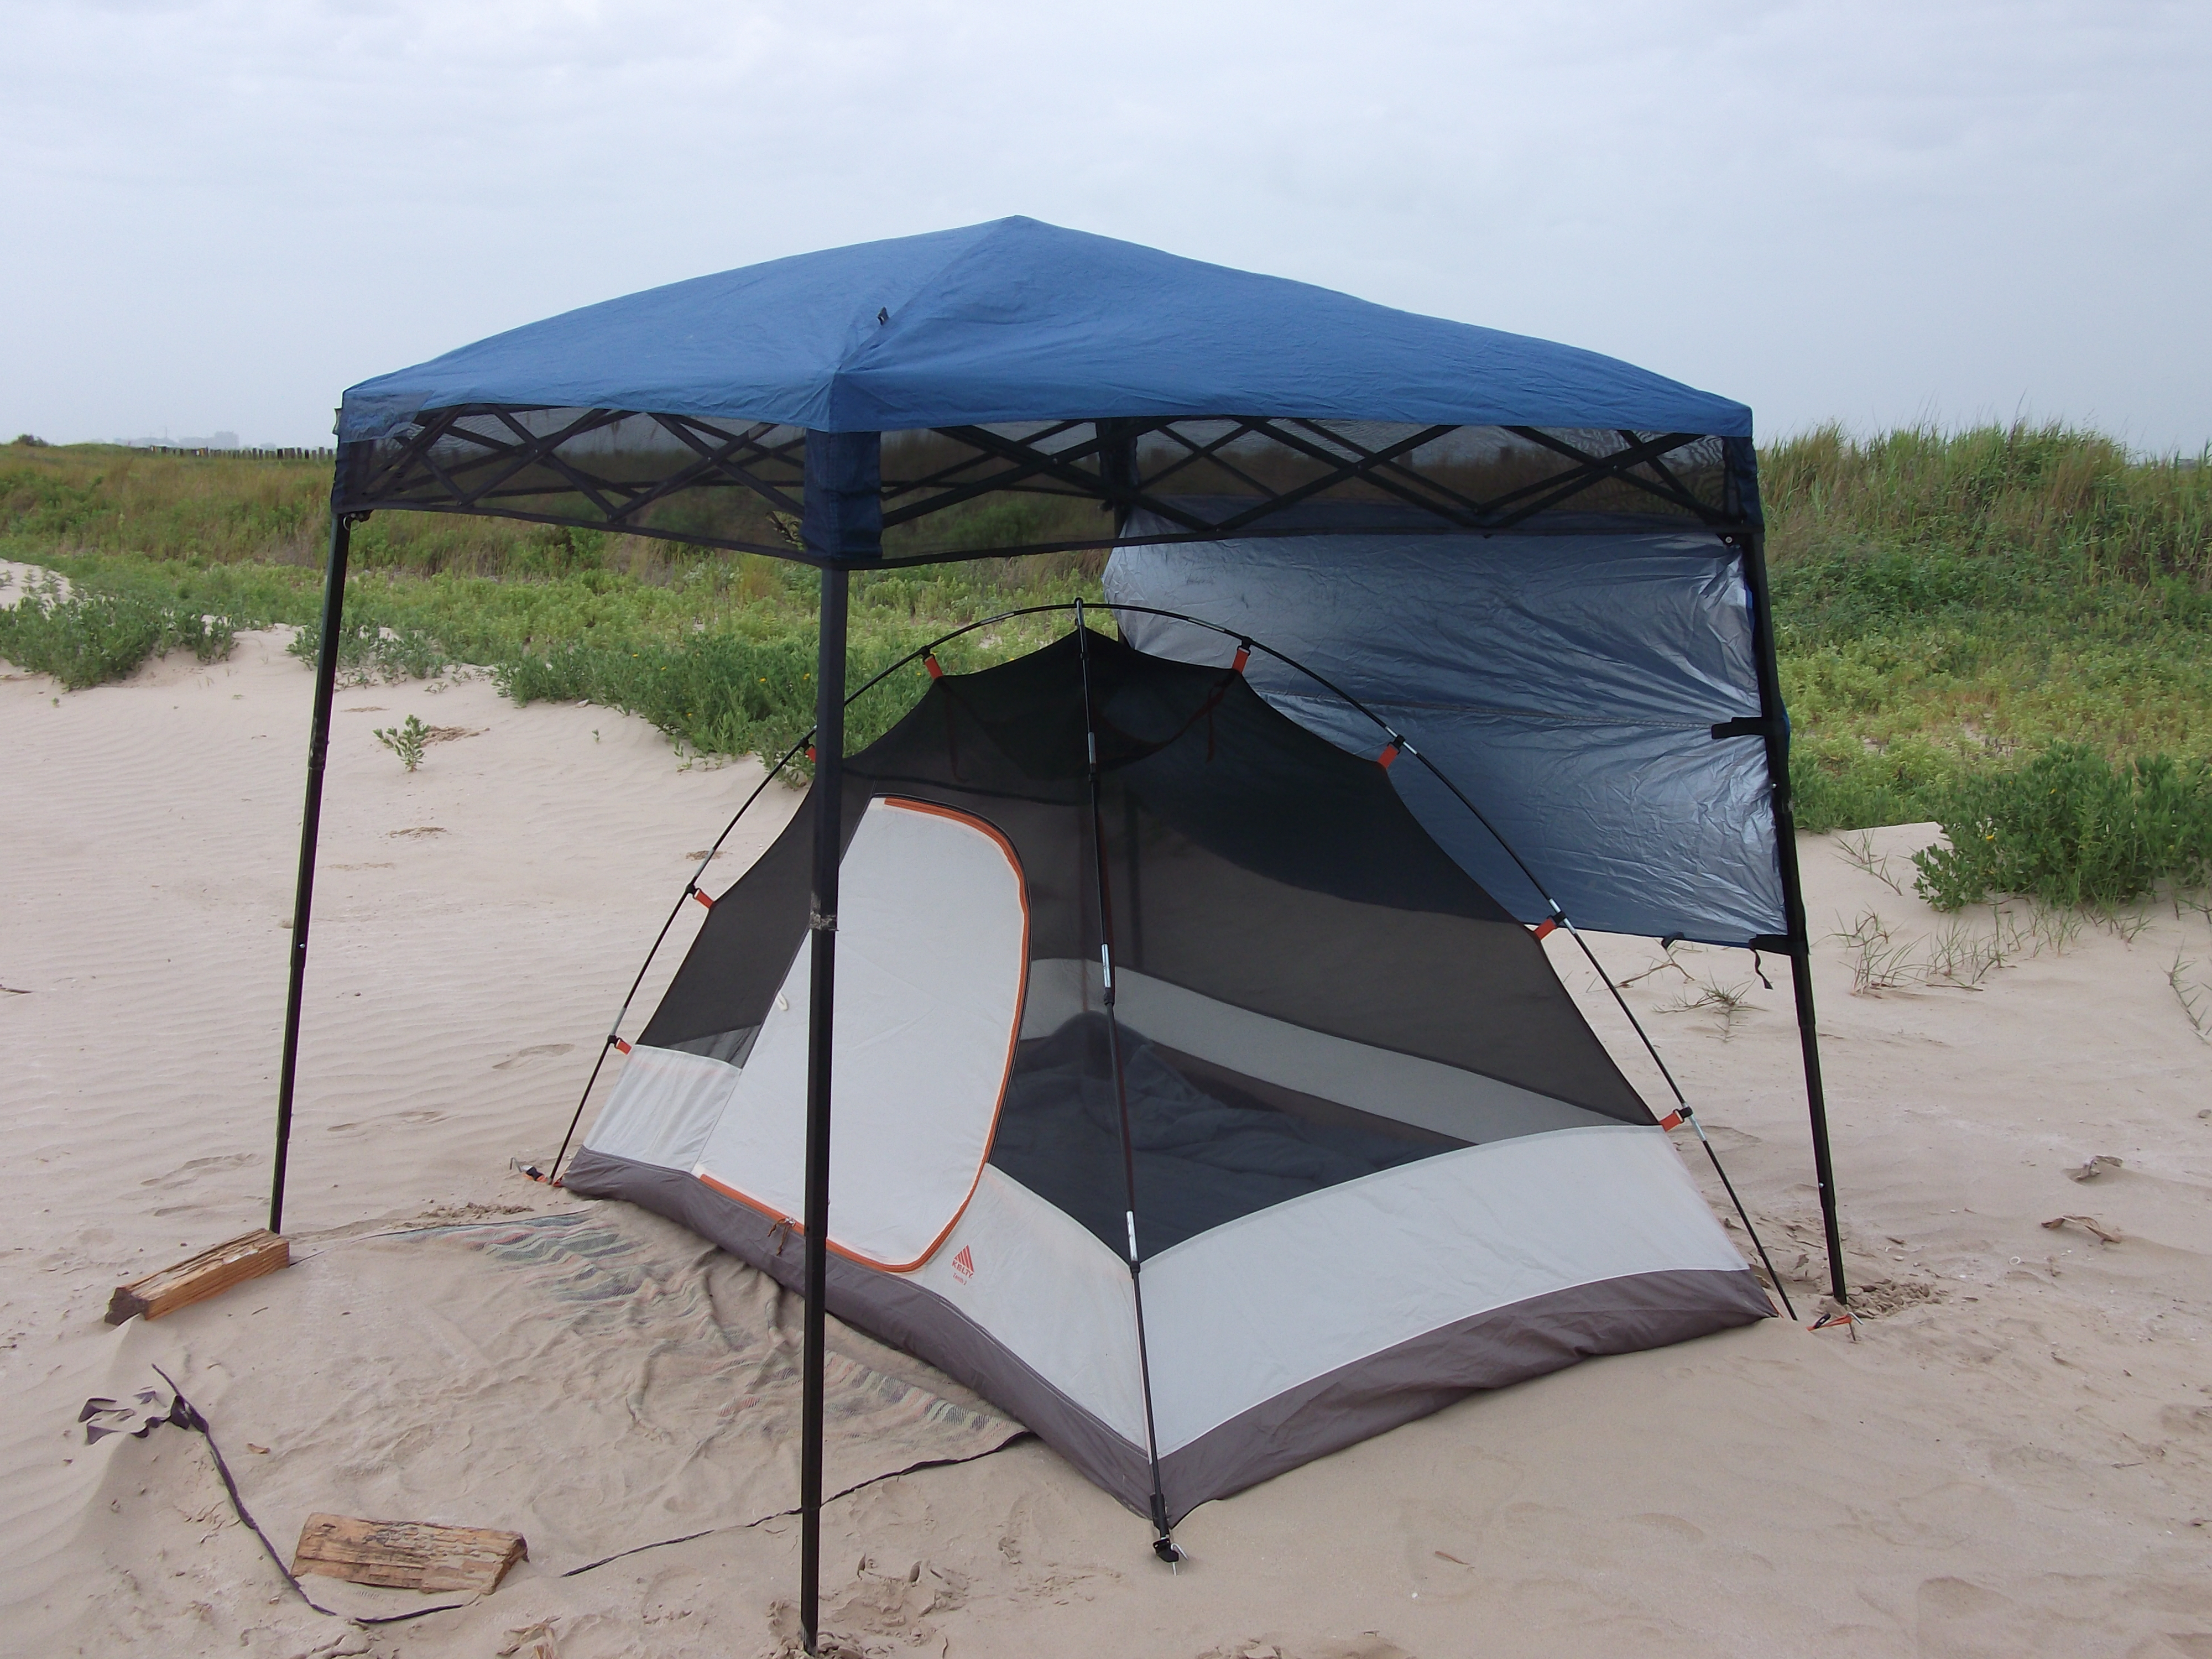 The Quick Shade Go Hybrid Backpack Canopy Is A Necessity If You Are Planning To Spend Any Time In Sun This Lightweight Easy Assemble And